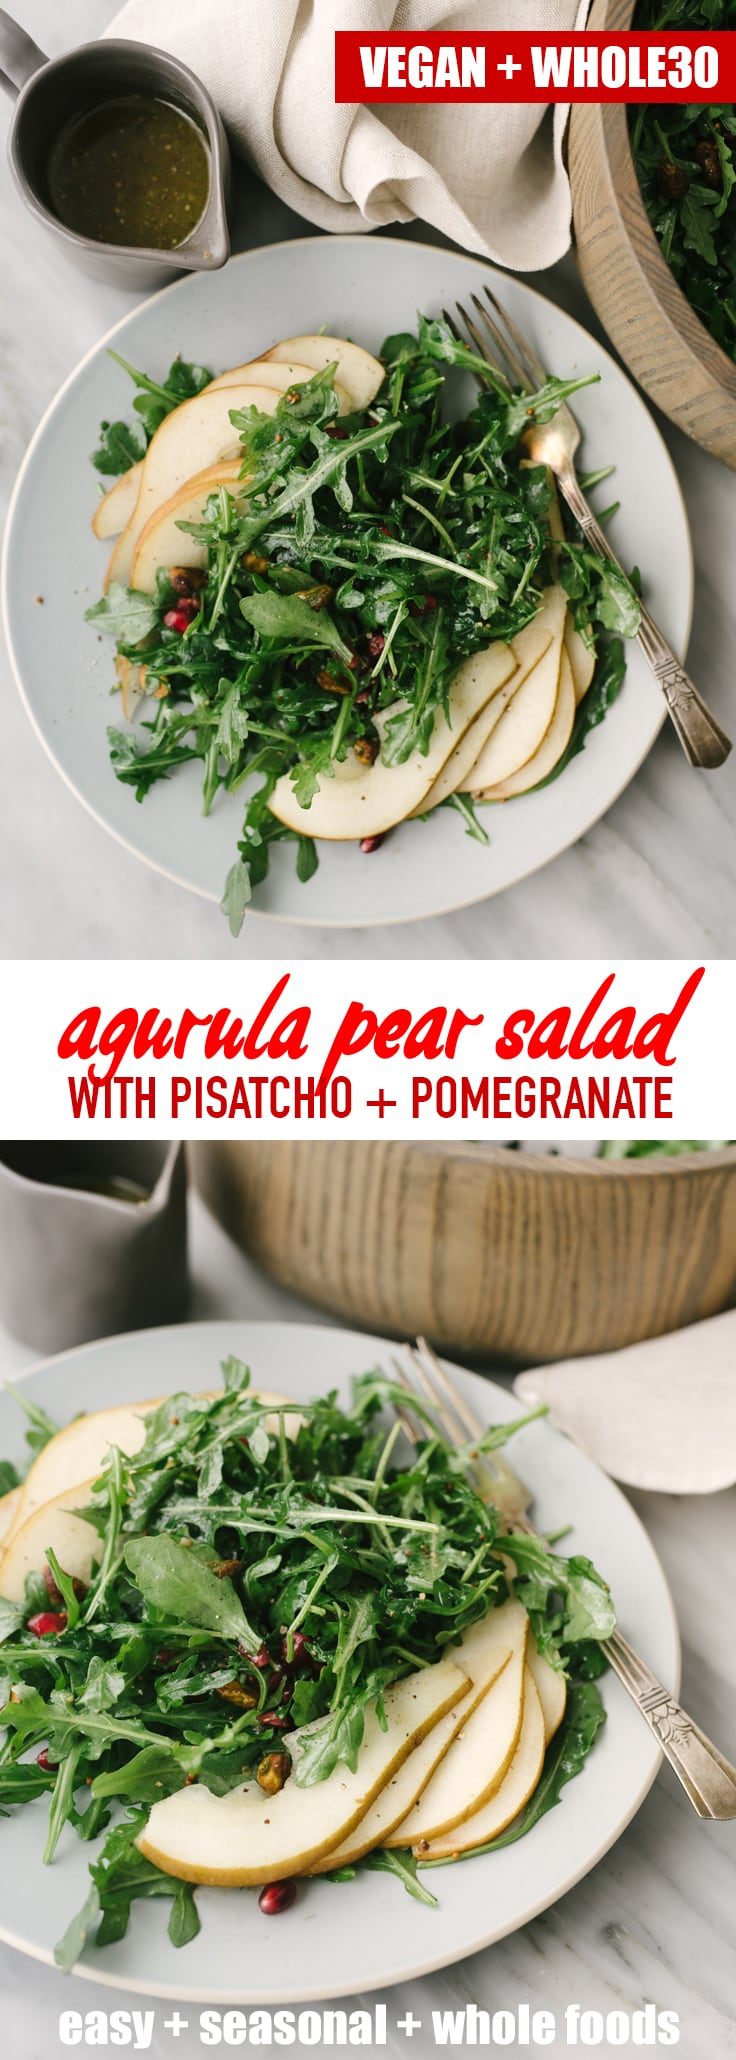 This arugula pear salad is a satisfying whole food recipe that's ready in mere minutes. This sweet and colorful winter salad is Whole30, vegan, and insanely delicious! #whole30 #vegan #arugulasalad #wholefoods #realfood